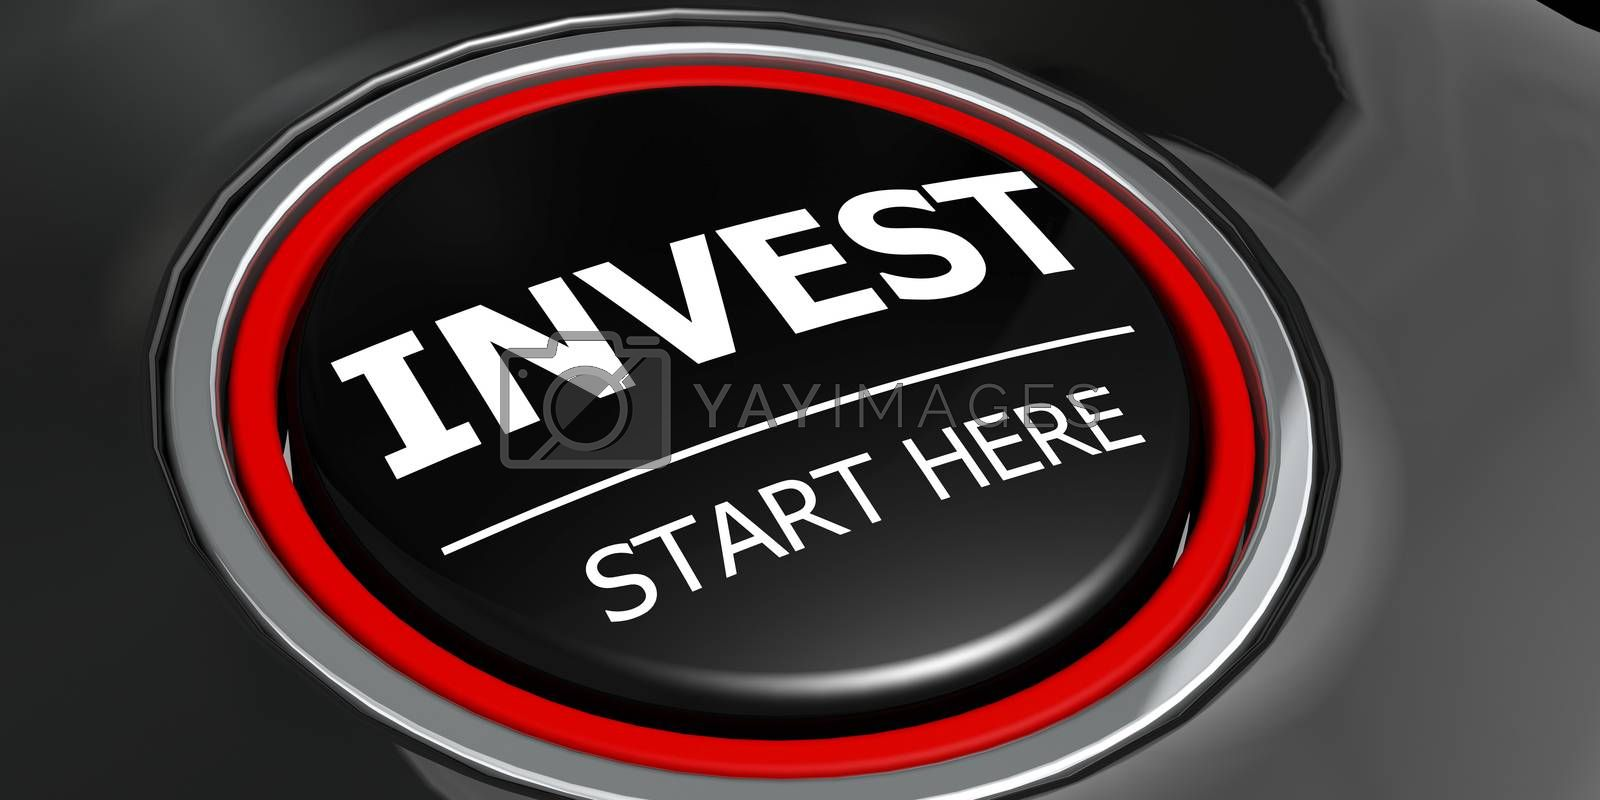 Invest start here button on black background, 3d rendering